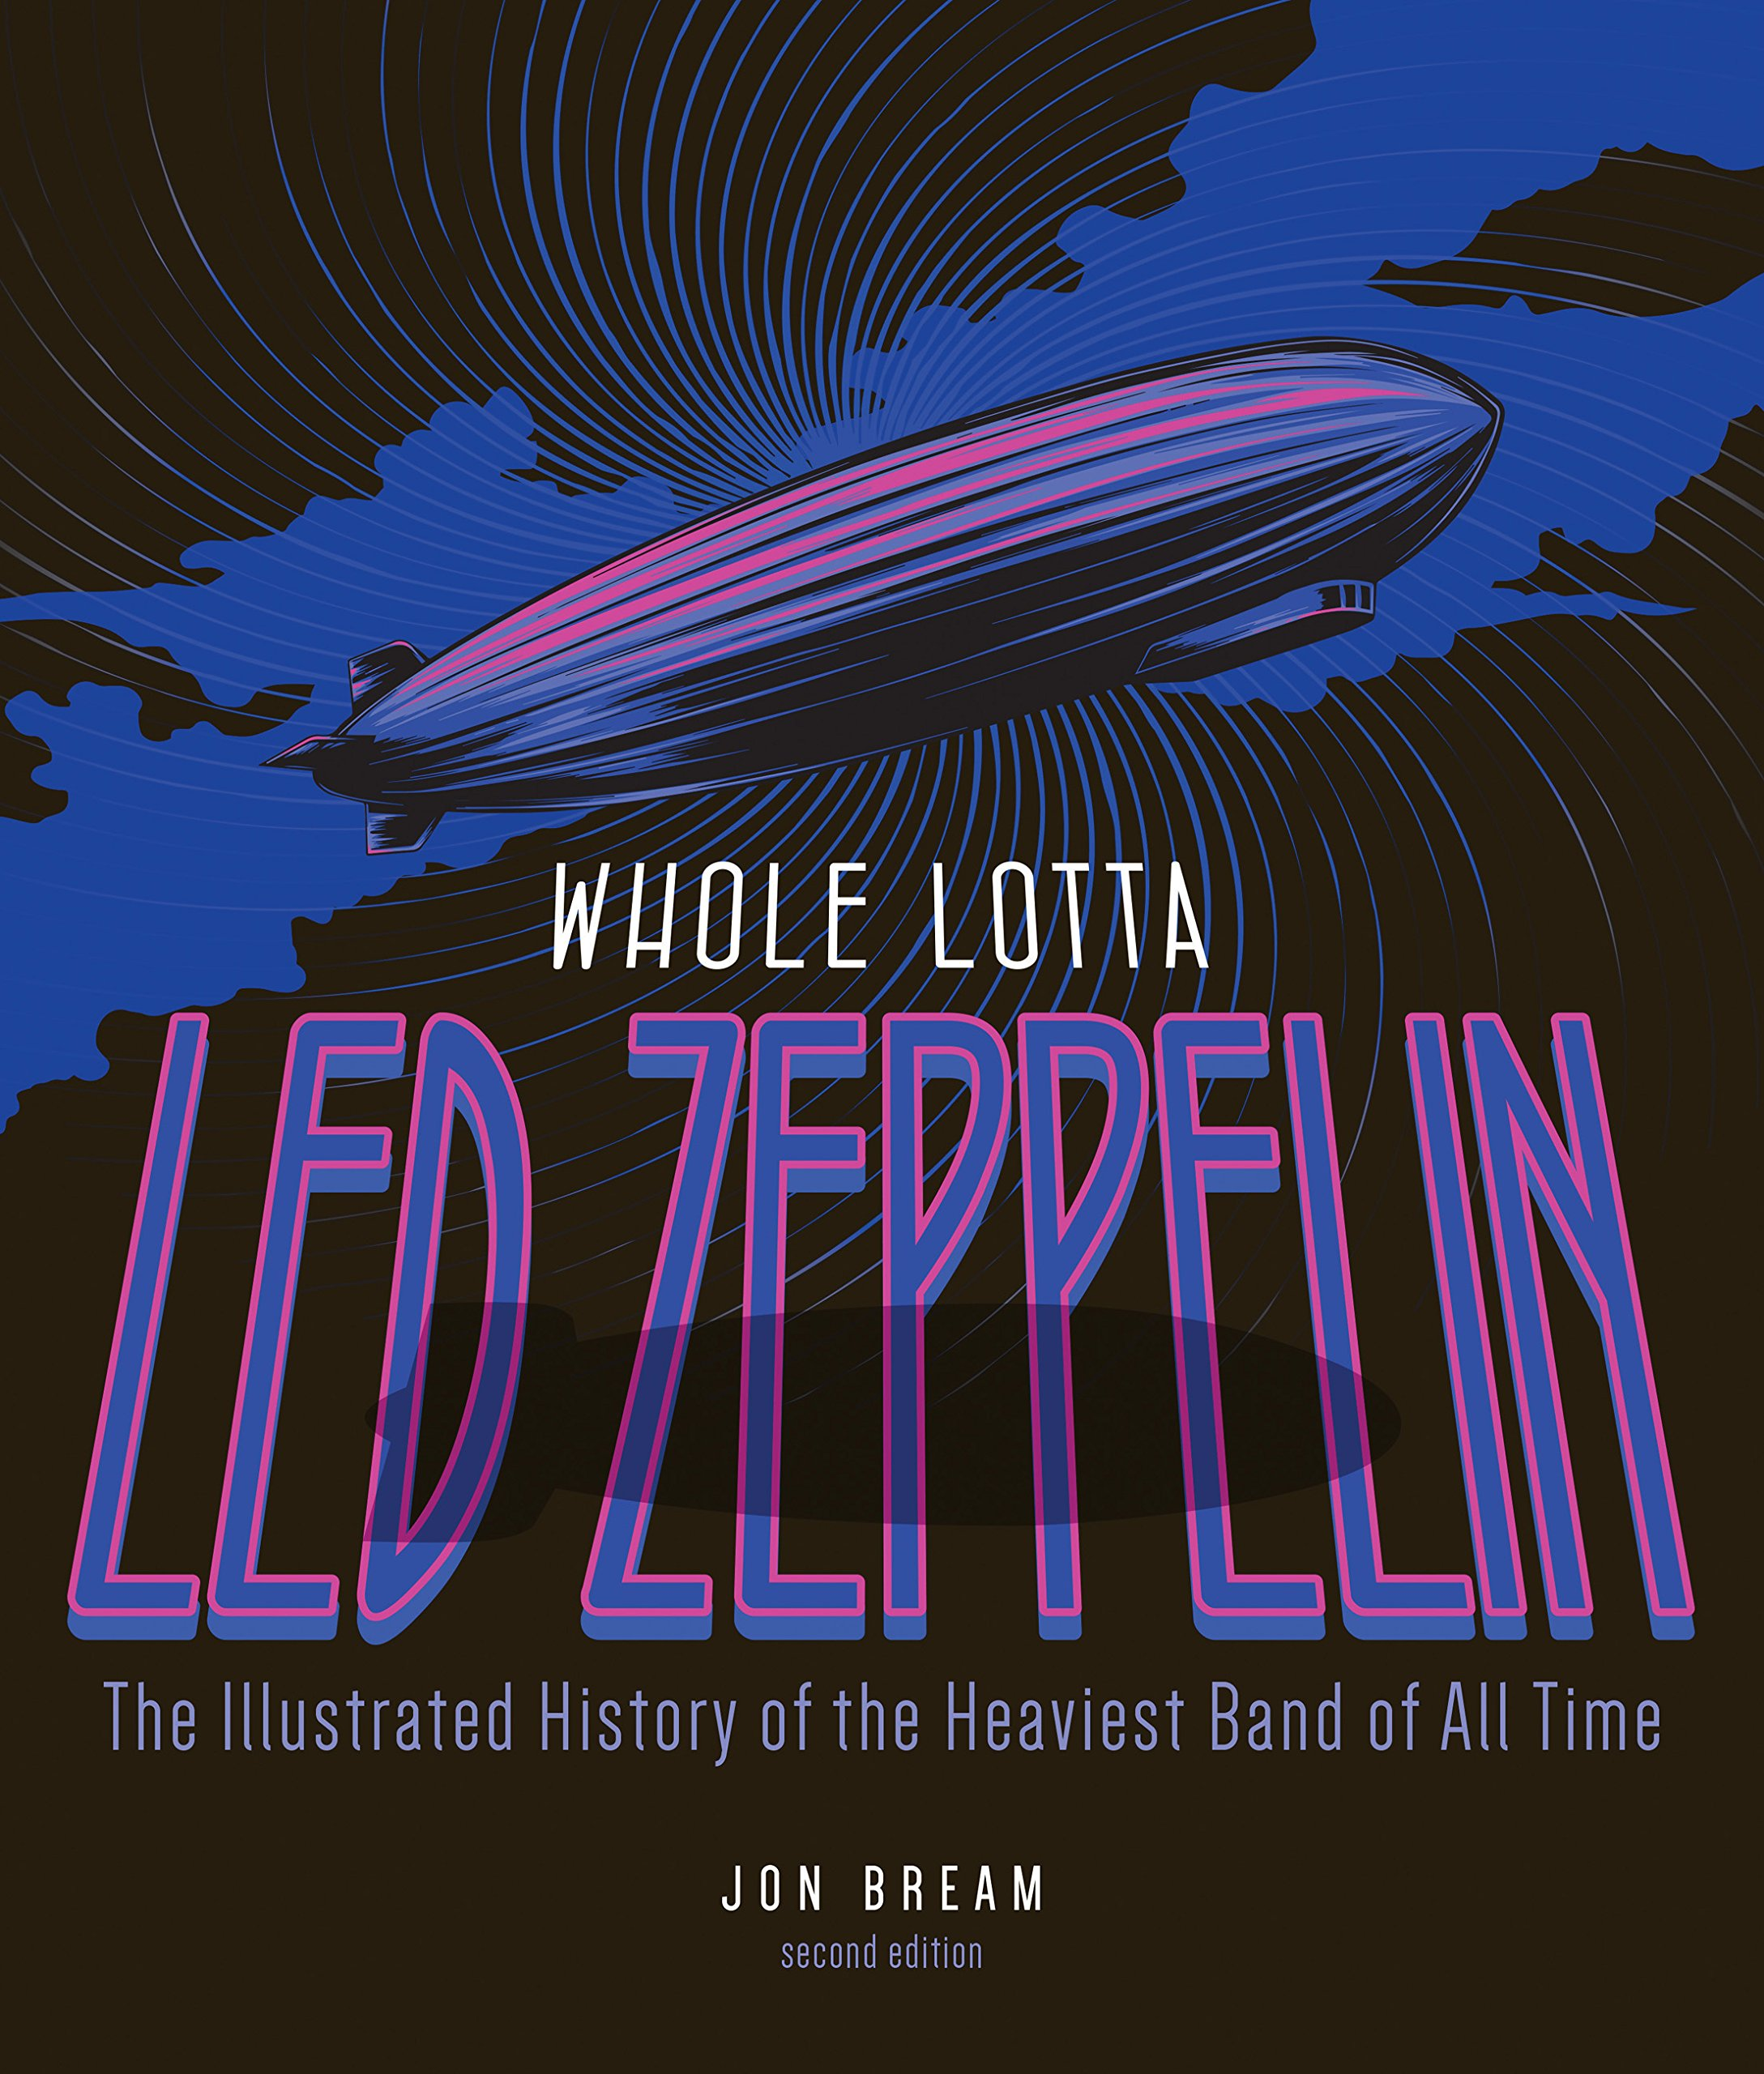 Whole Lotta Led Zeppelin 2nd Edition The Illustrated History Of